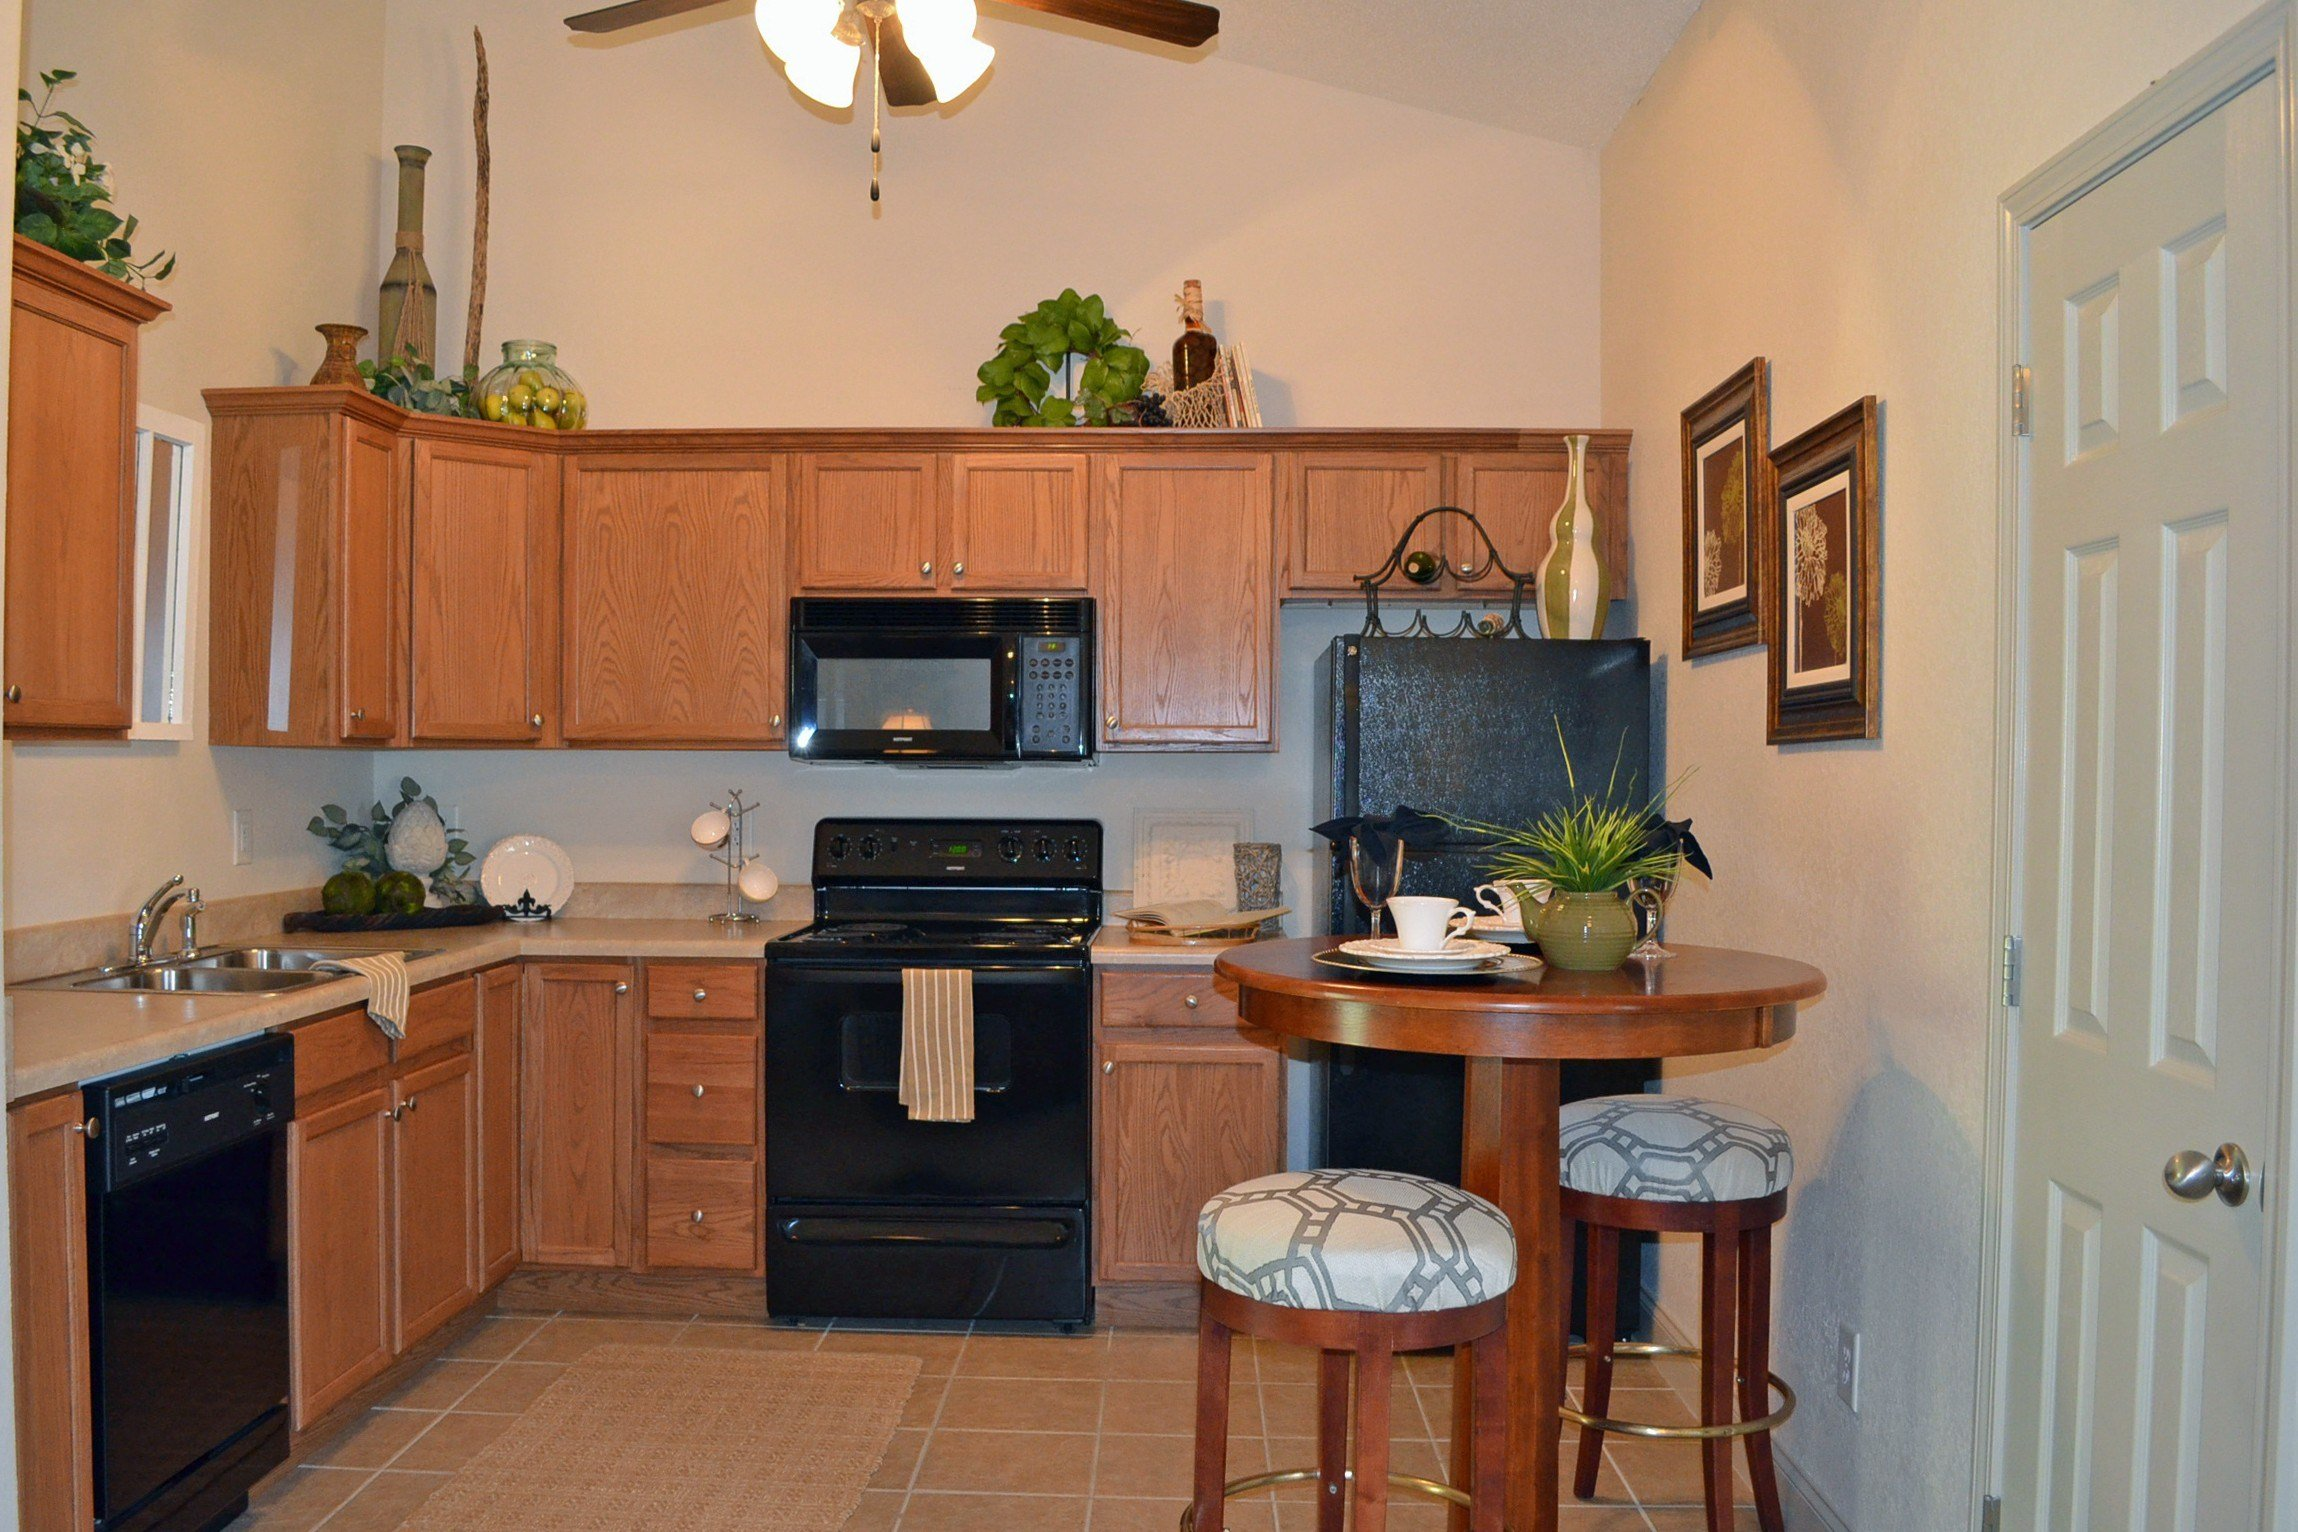 Best New 1 Bedroom Apartment Johnson City Tn Furnitureinredsea Com With Pictures